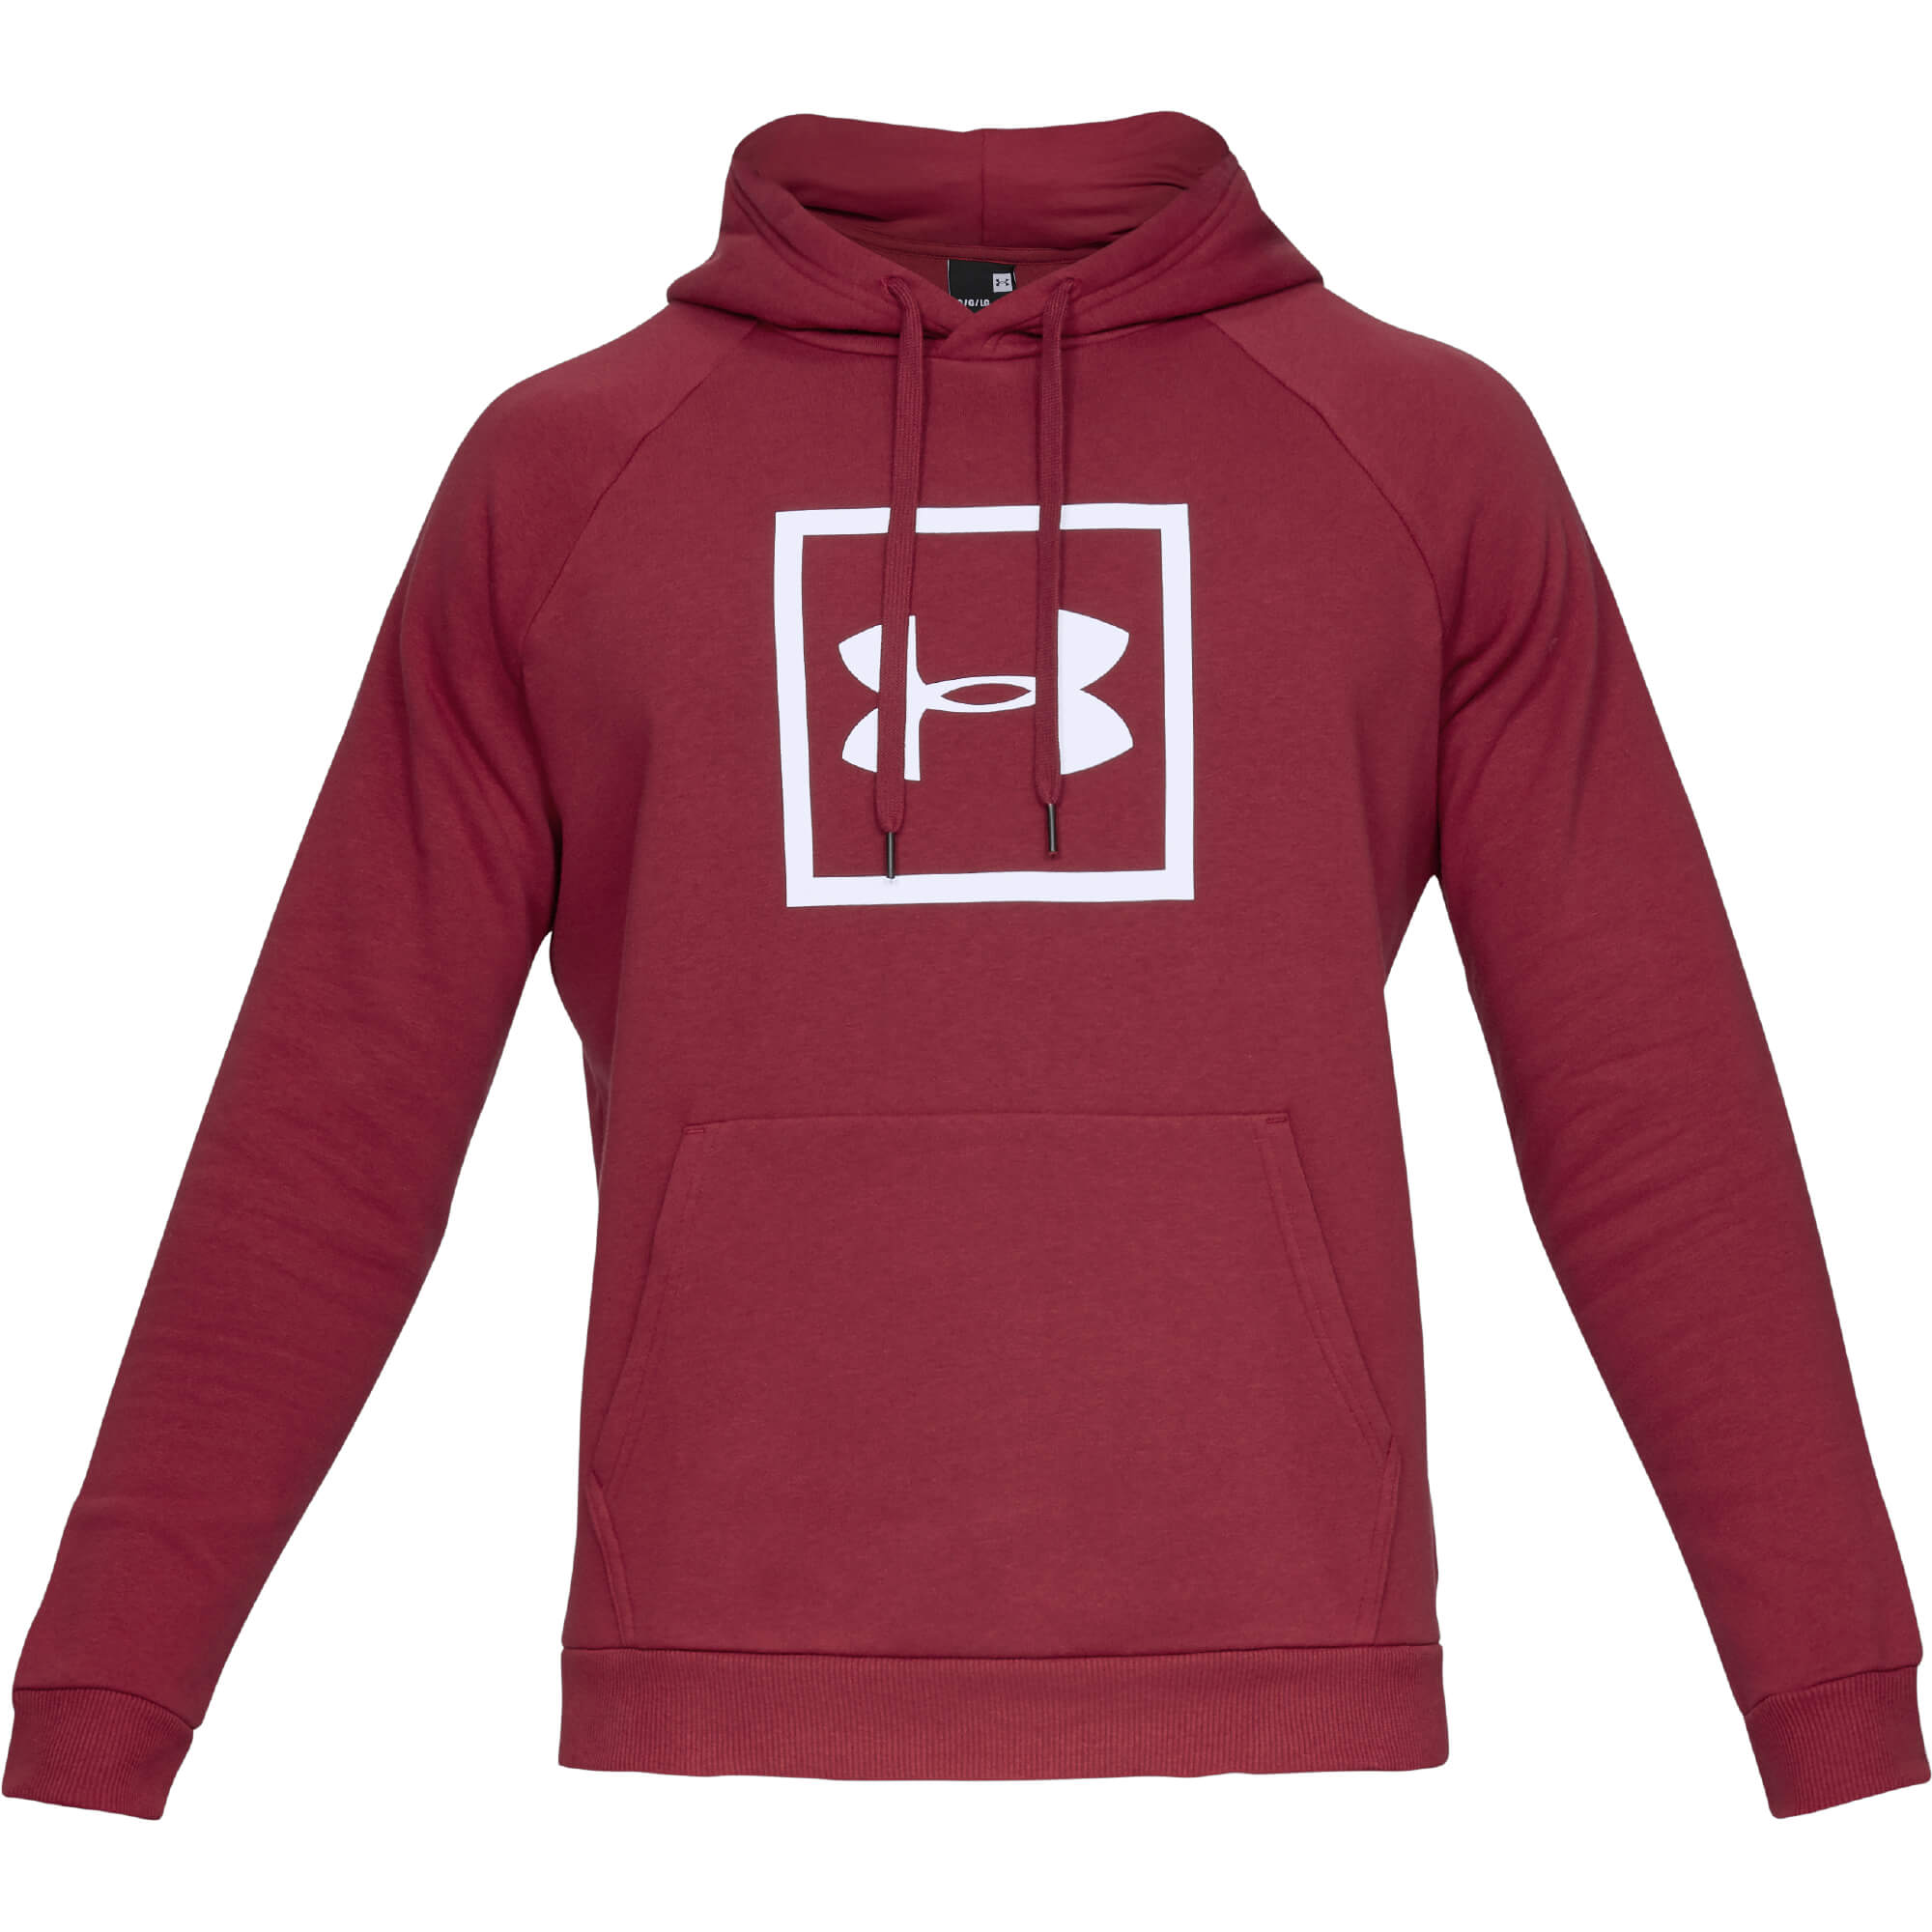 Under Armour Puloverji RIVAL FLEECE LOGO HOODIE Rdeča - Ceneje.si 767db02b52